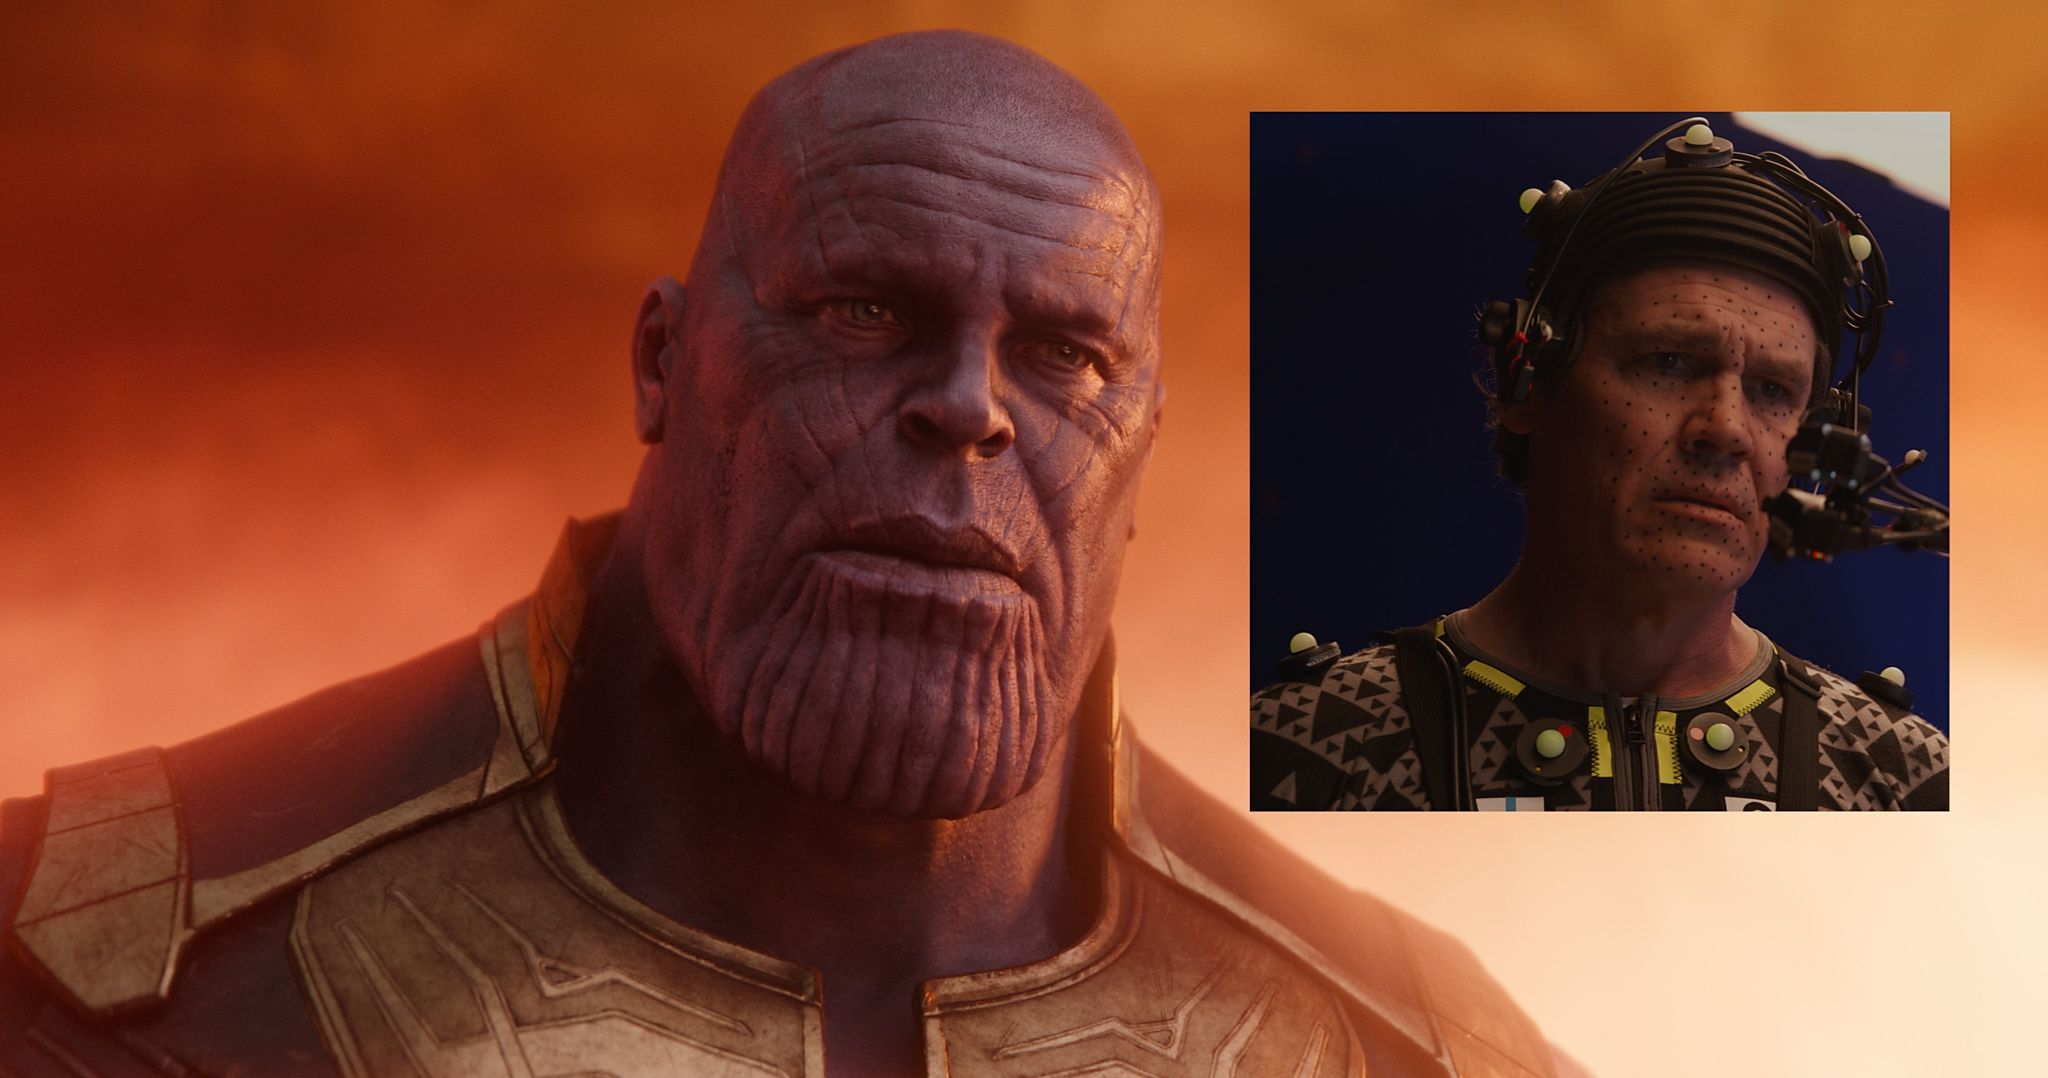 Thanos and Josh Brolin in performance capture rig for Avengers: Infinity War